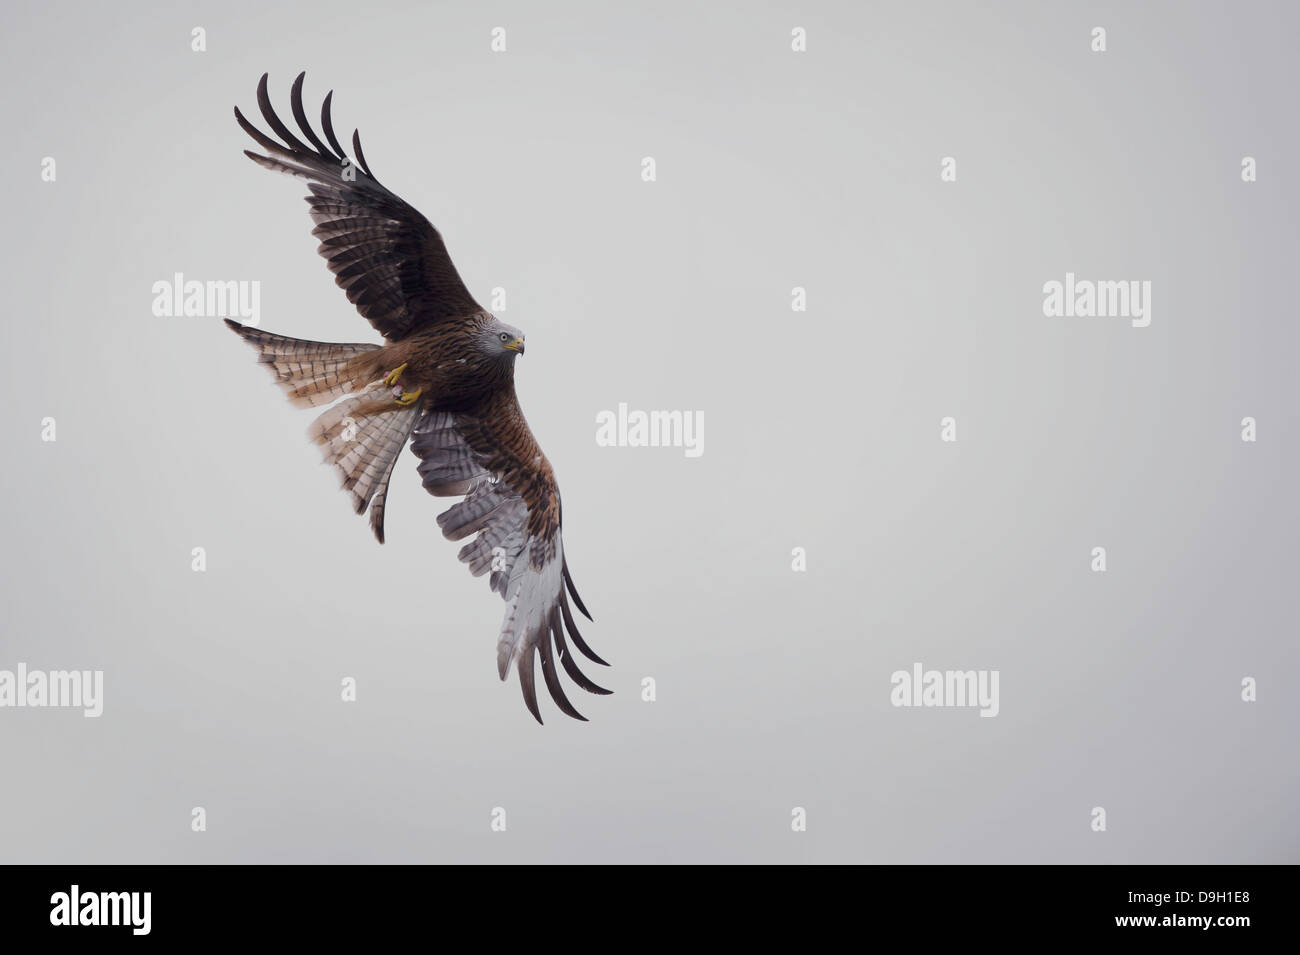 A raptor bird of prey Red Kite (Milvus milvus) in flight with wings extended, holding a morsel of carrion in its - Stock Image